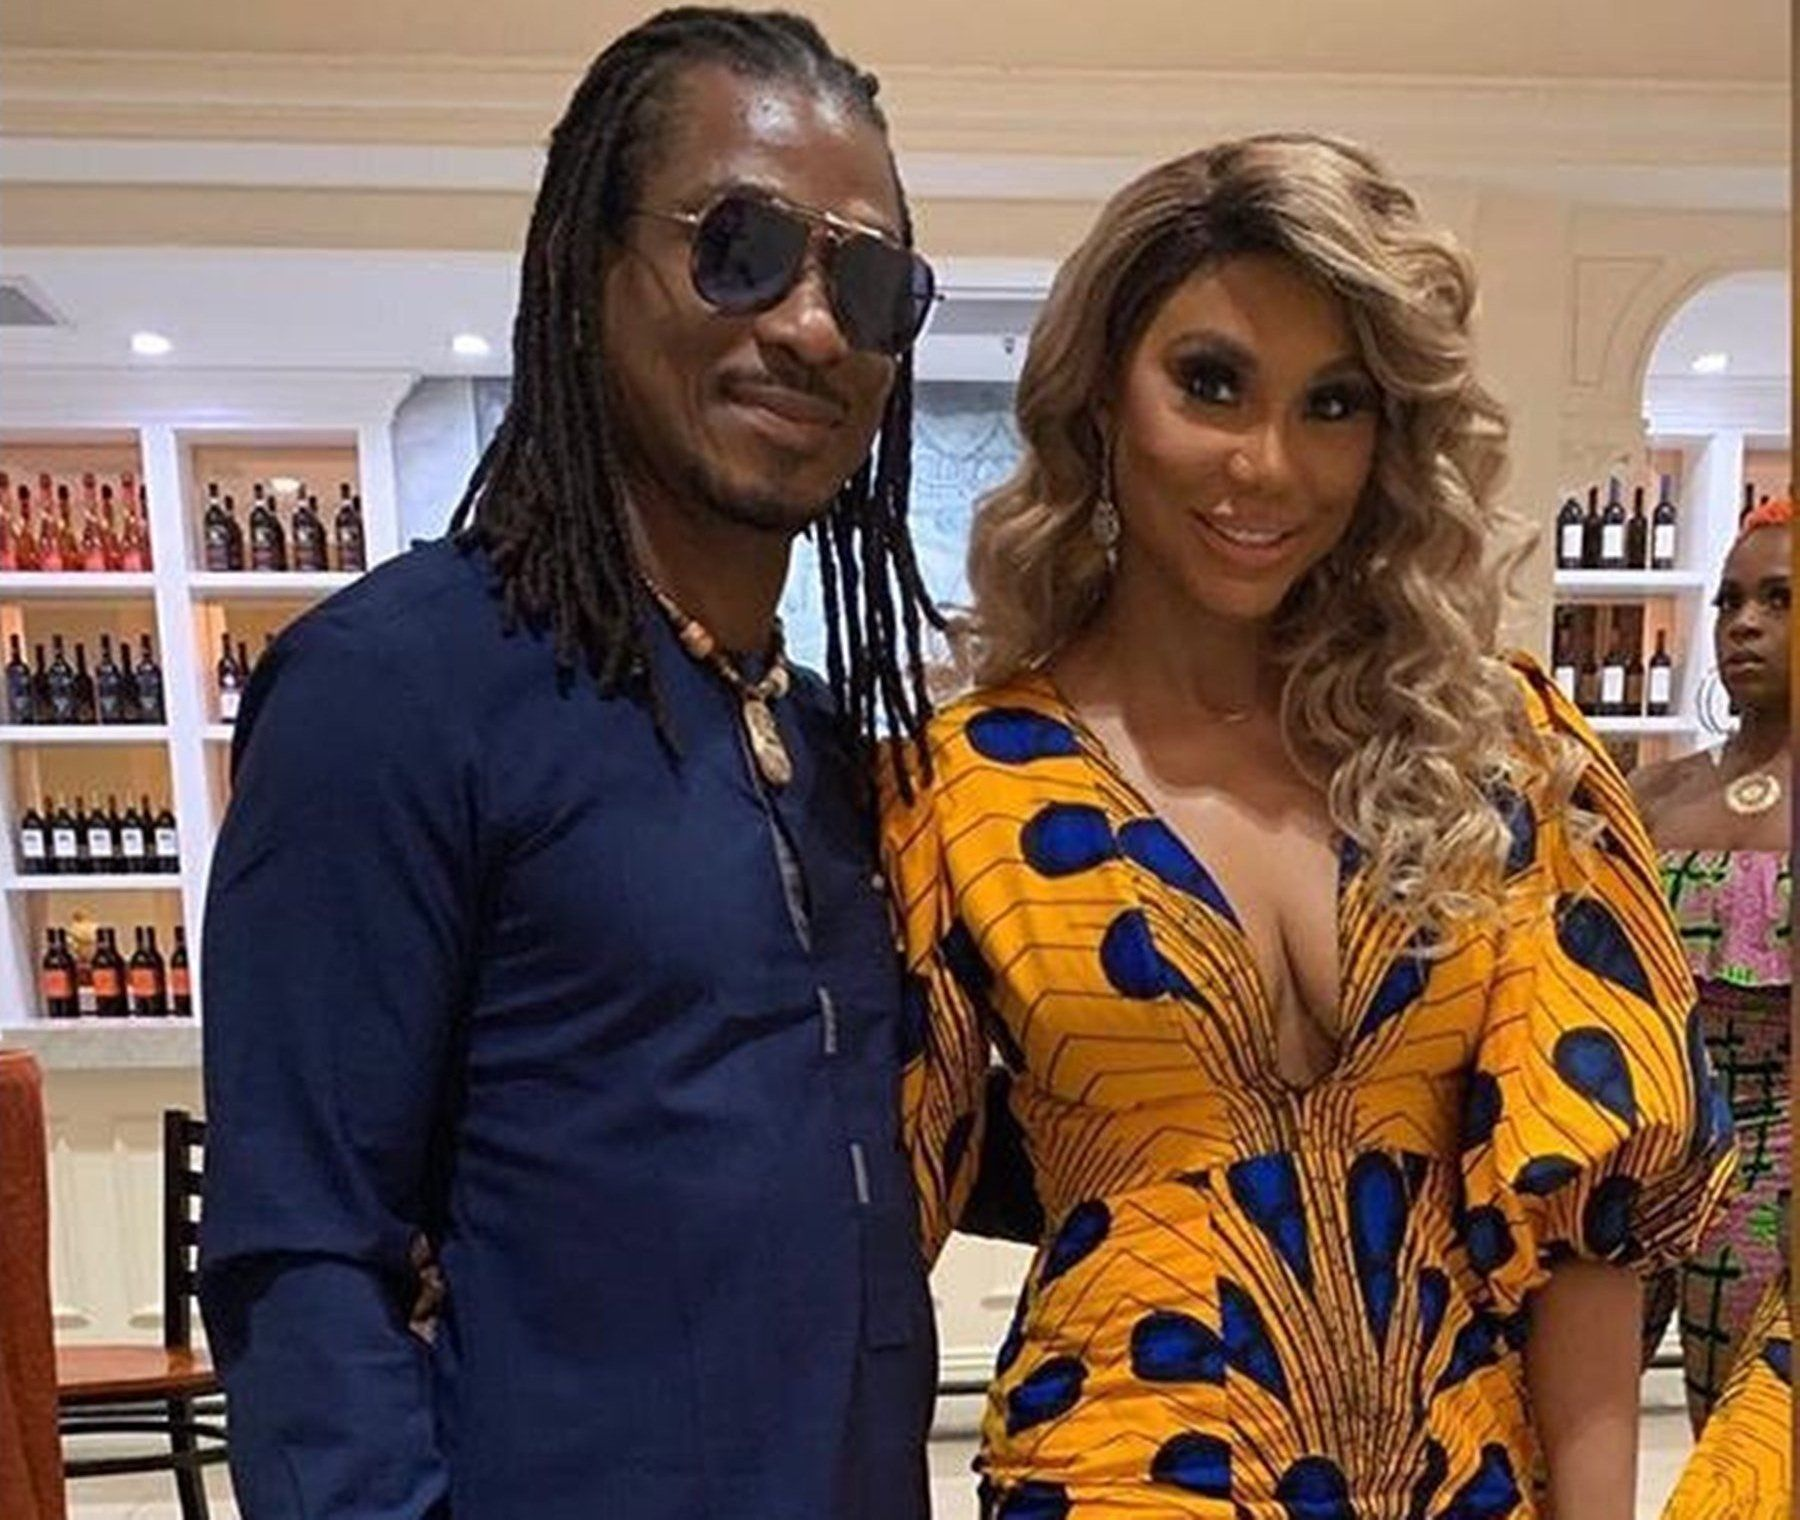 Photo of Tamar Braxton Has Fans Confused After She Deletes All Her Instagram Posts And Tweets About 'Letting It Go' — What Is Going With David Adefeso?